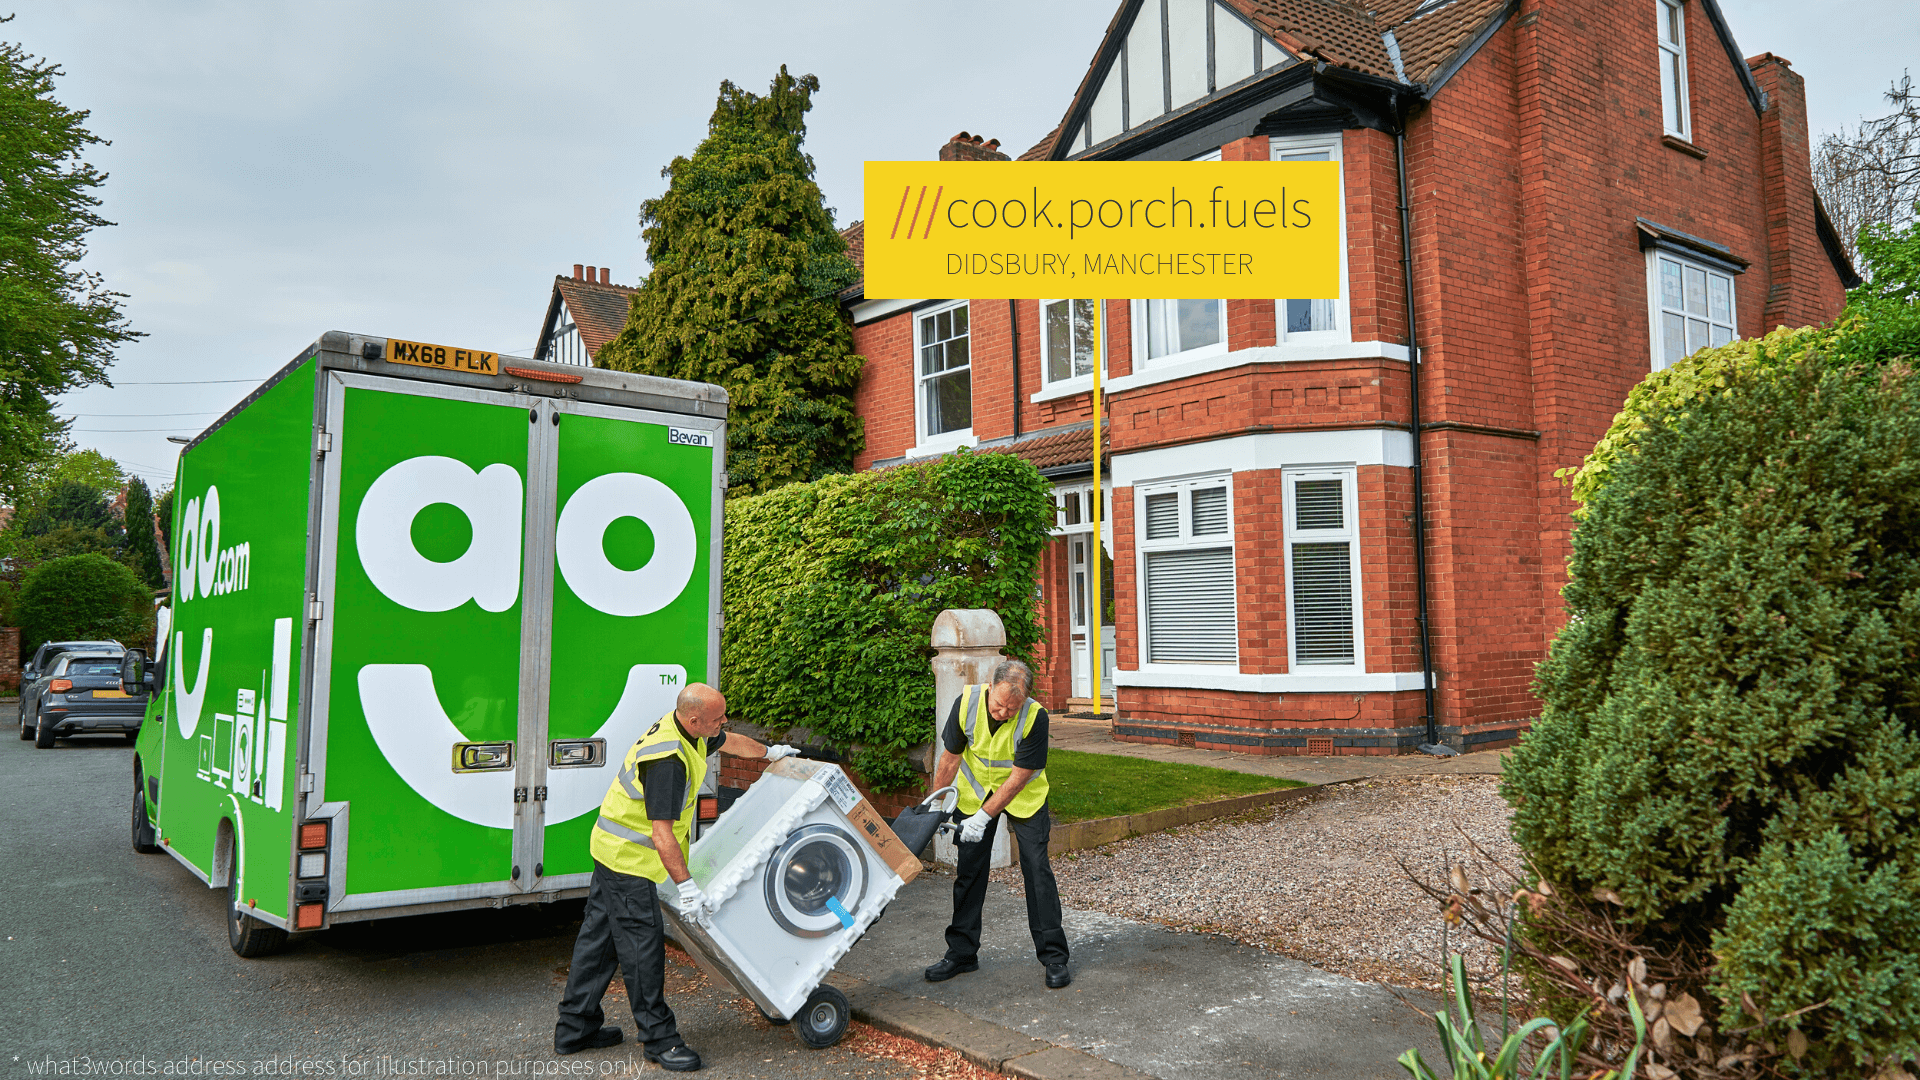 AO delivery van outside home at what3words address cook.porch.fuels